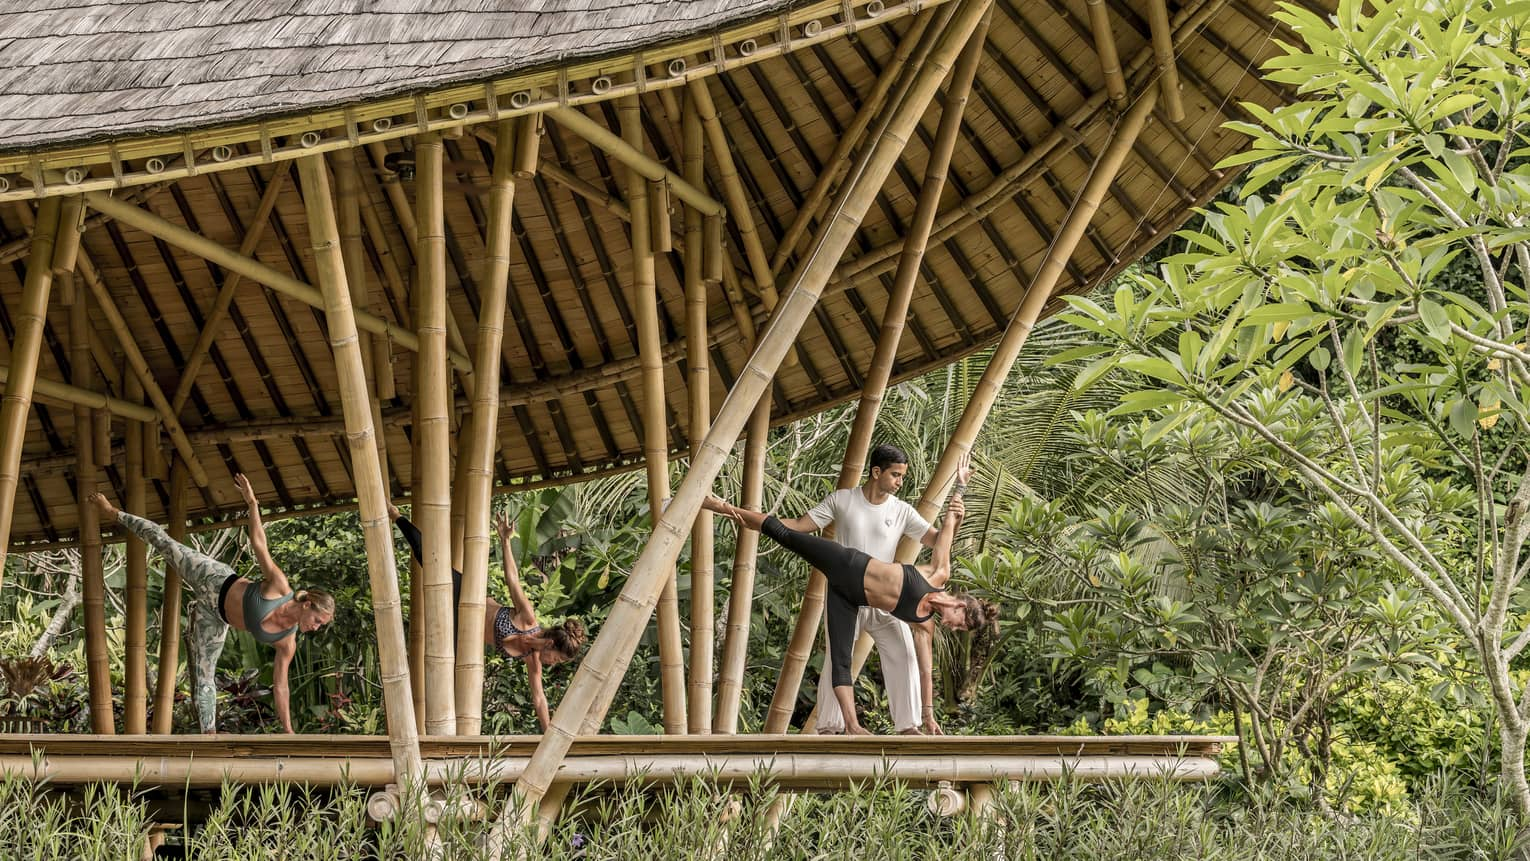 A group does yoga in a bamboo pavillion